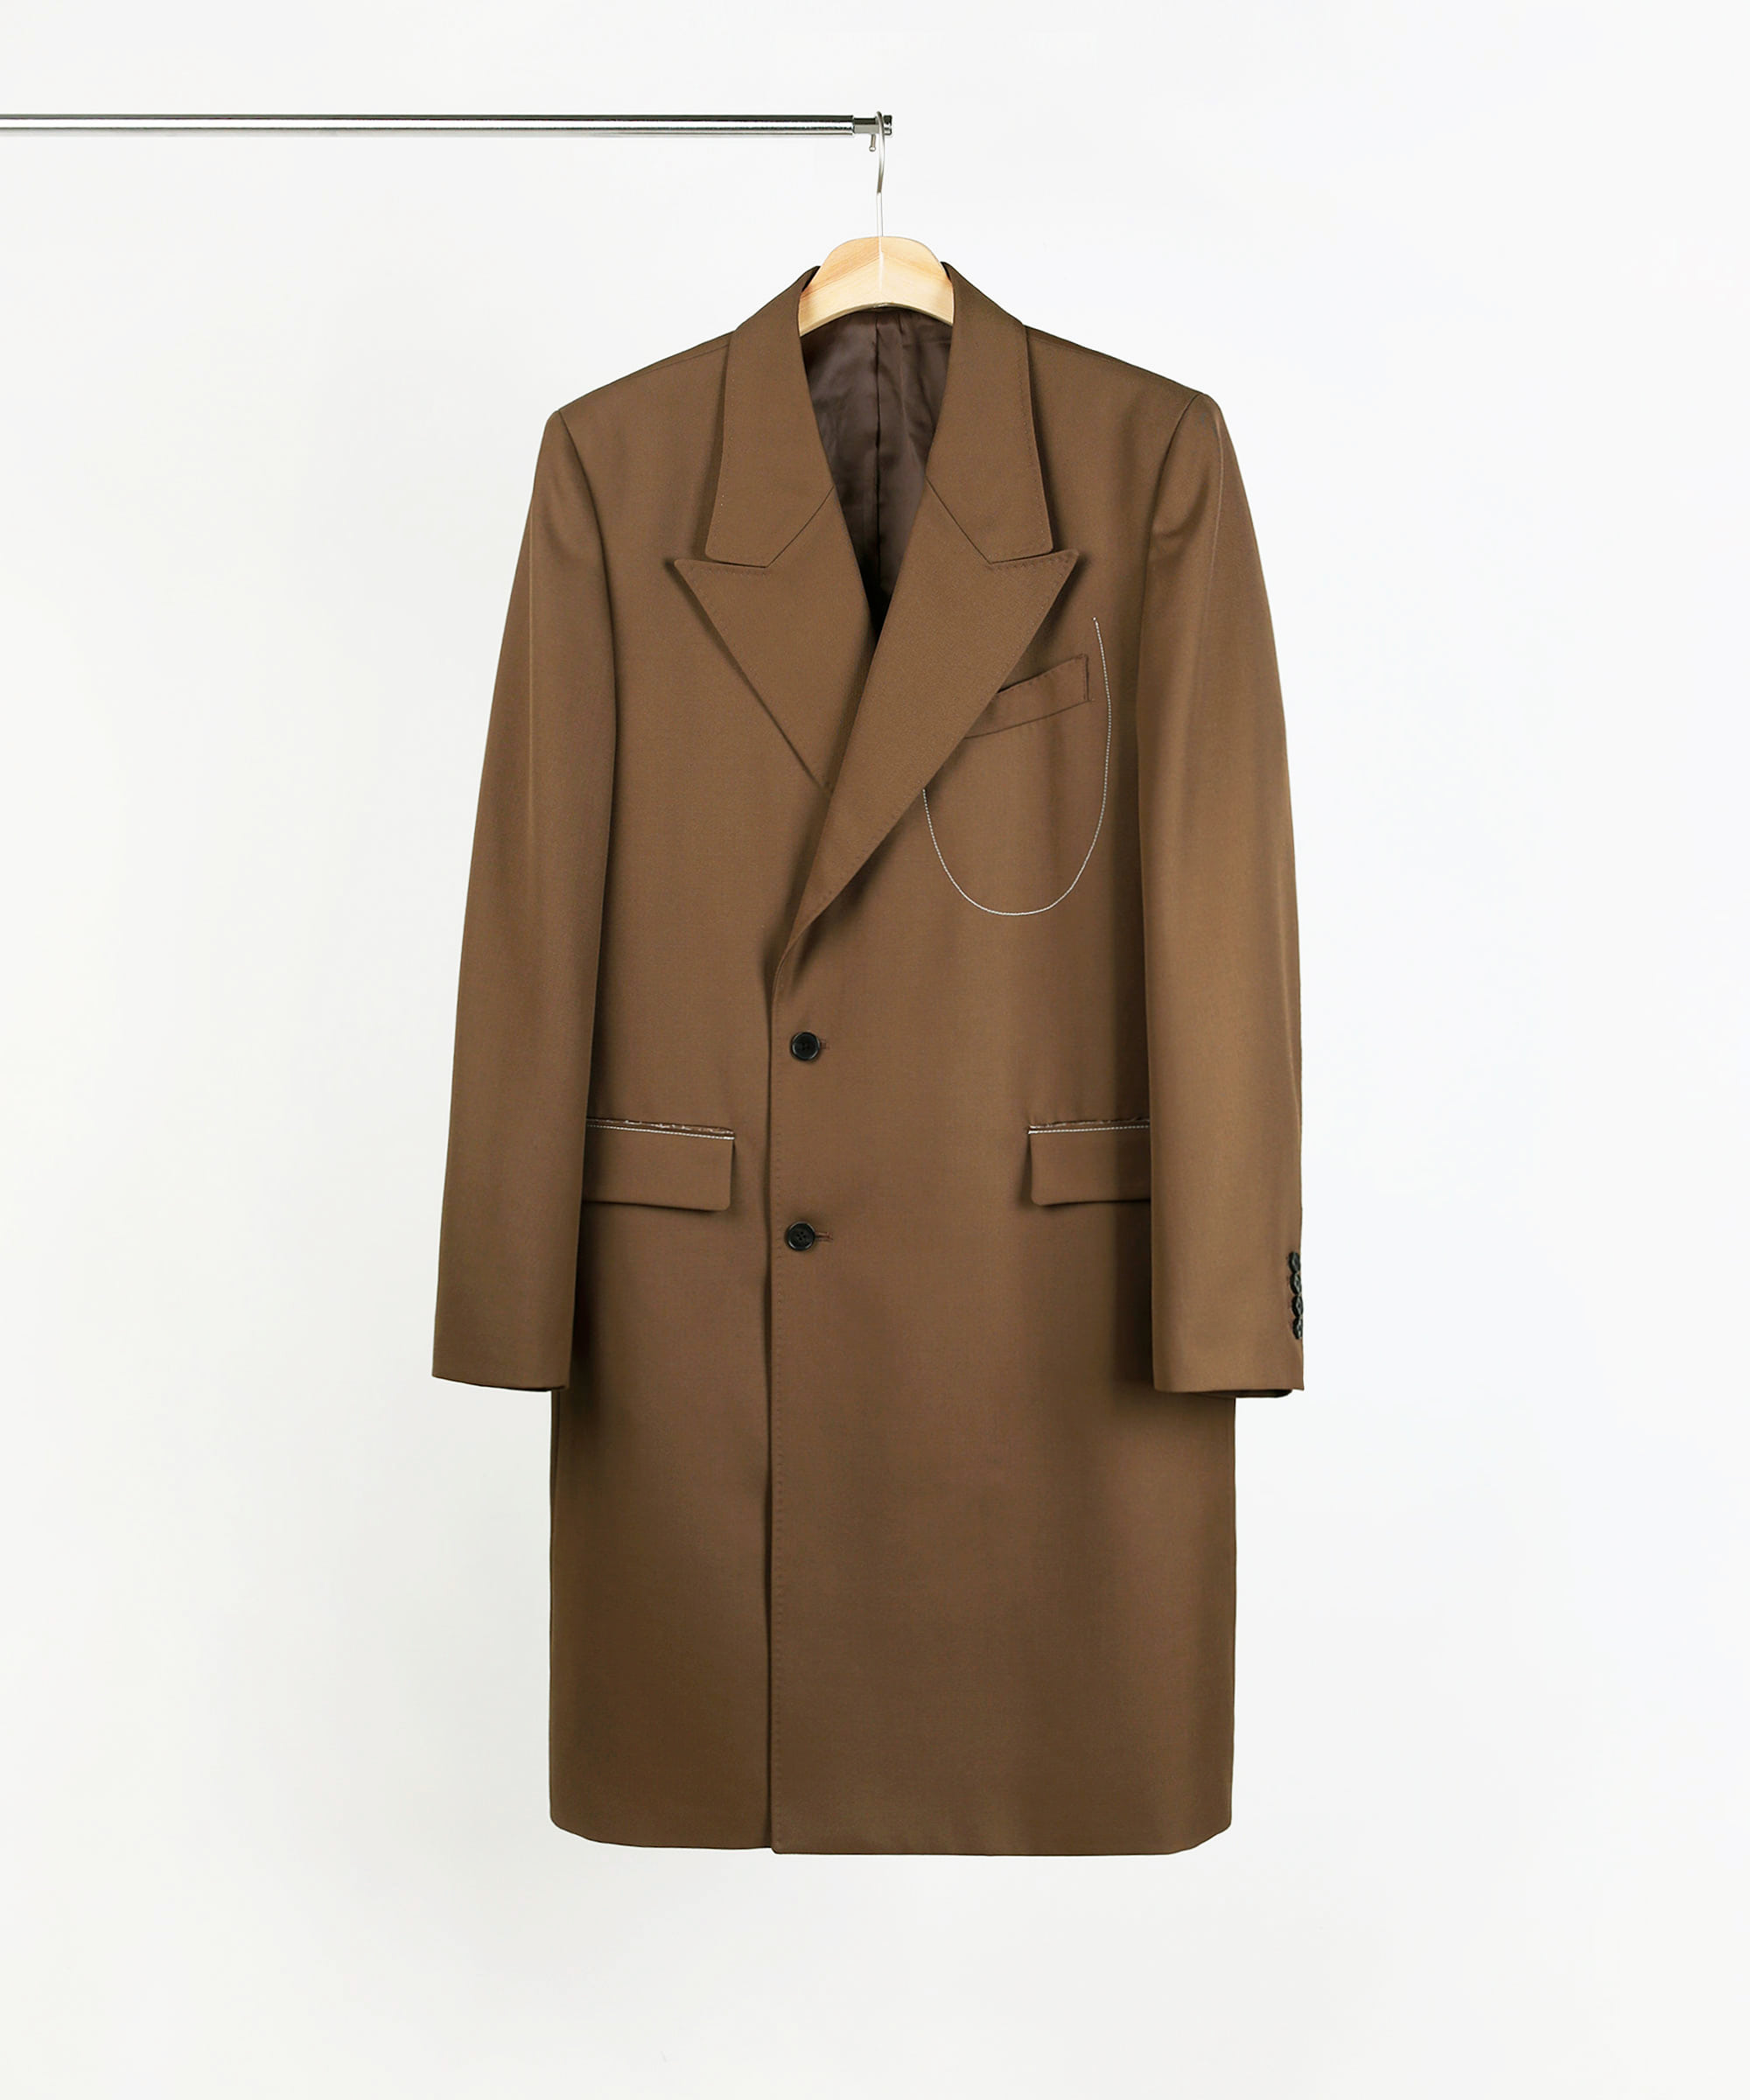 WINE BOTTLE DOUBLE BREASTED TAILORED COAT BROWN